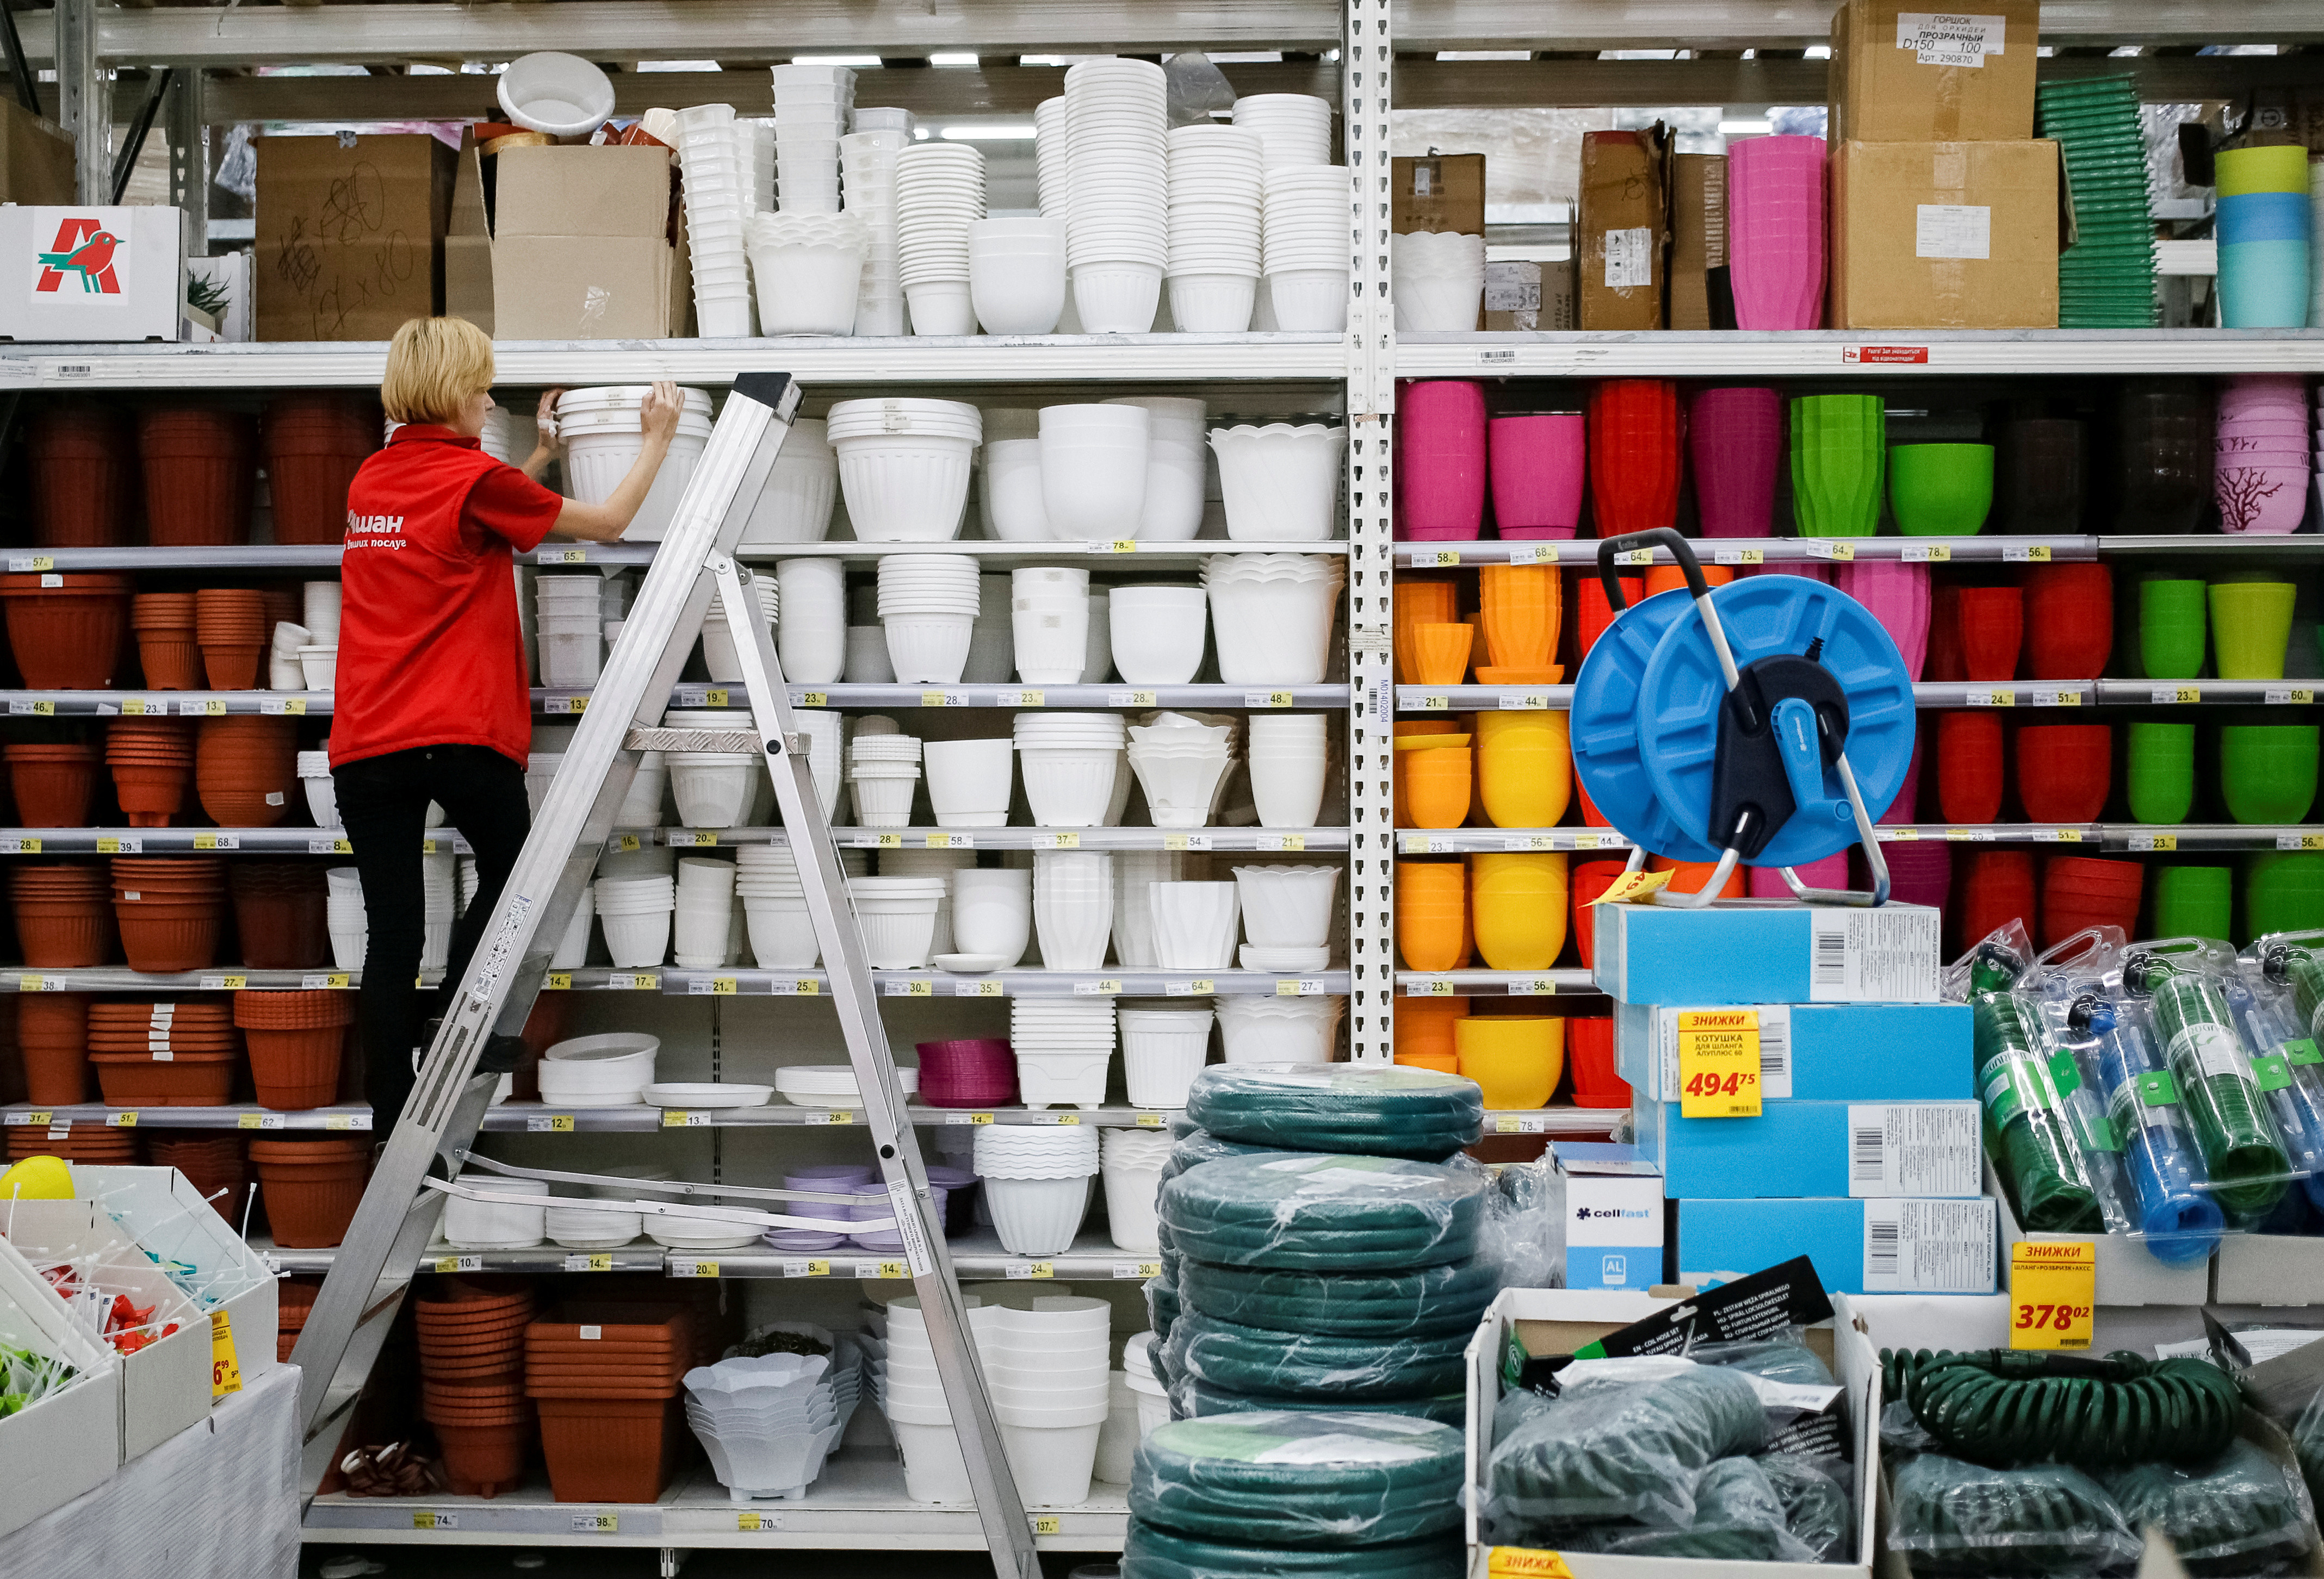 An employee stacks shelves with plastic containers at a supermarket in Kiev, Ukraine, August 7, 2016.